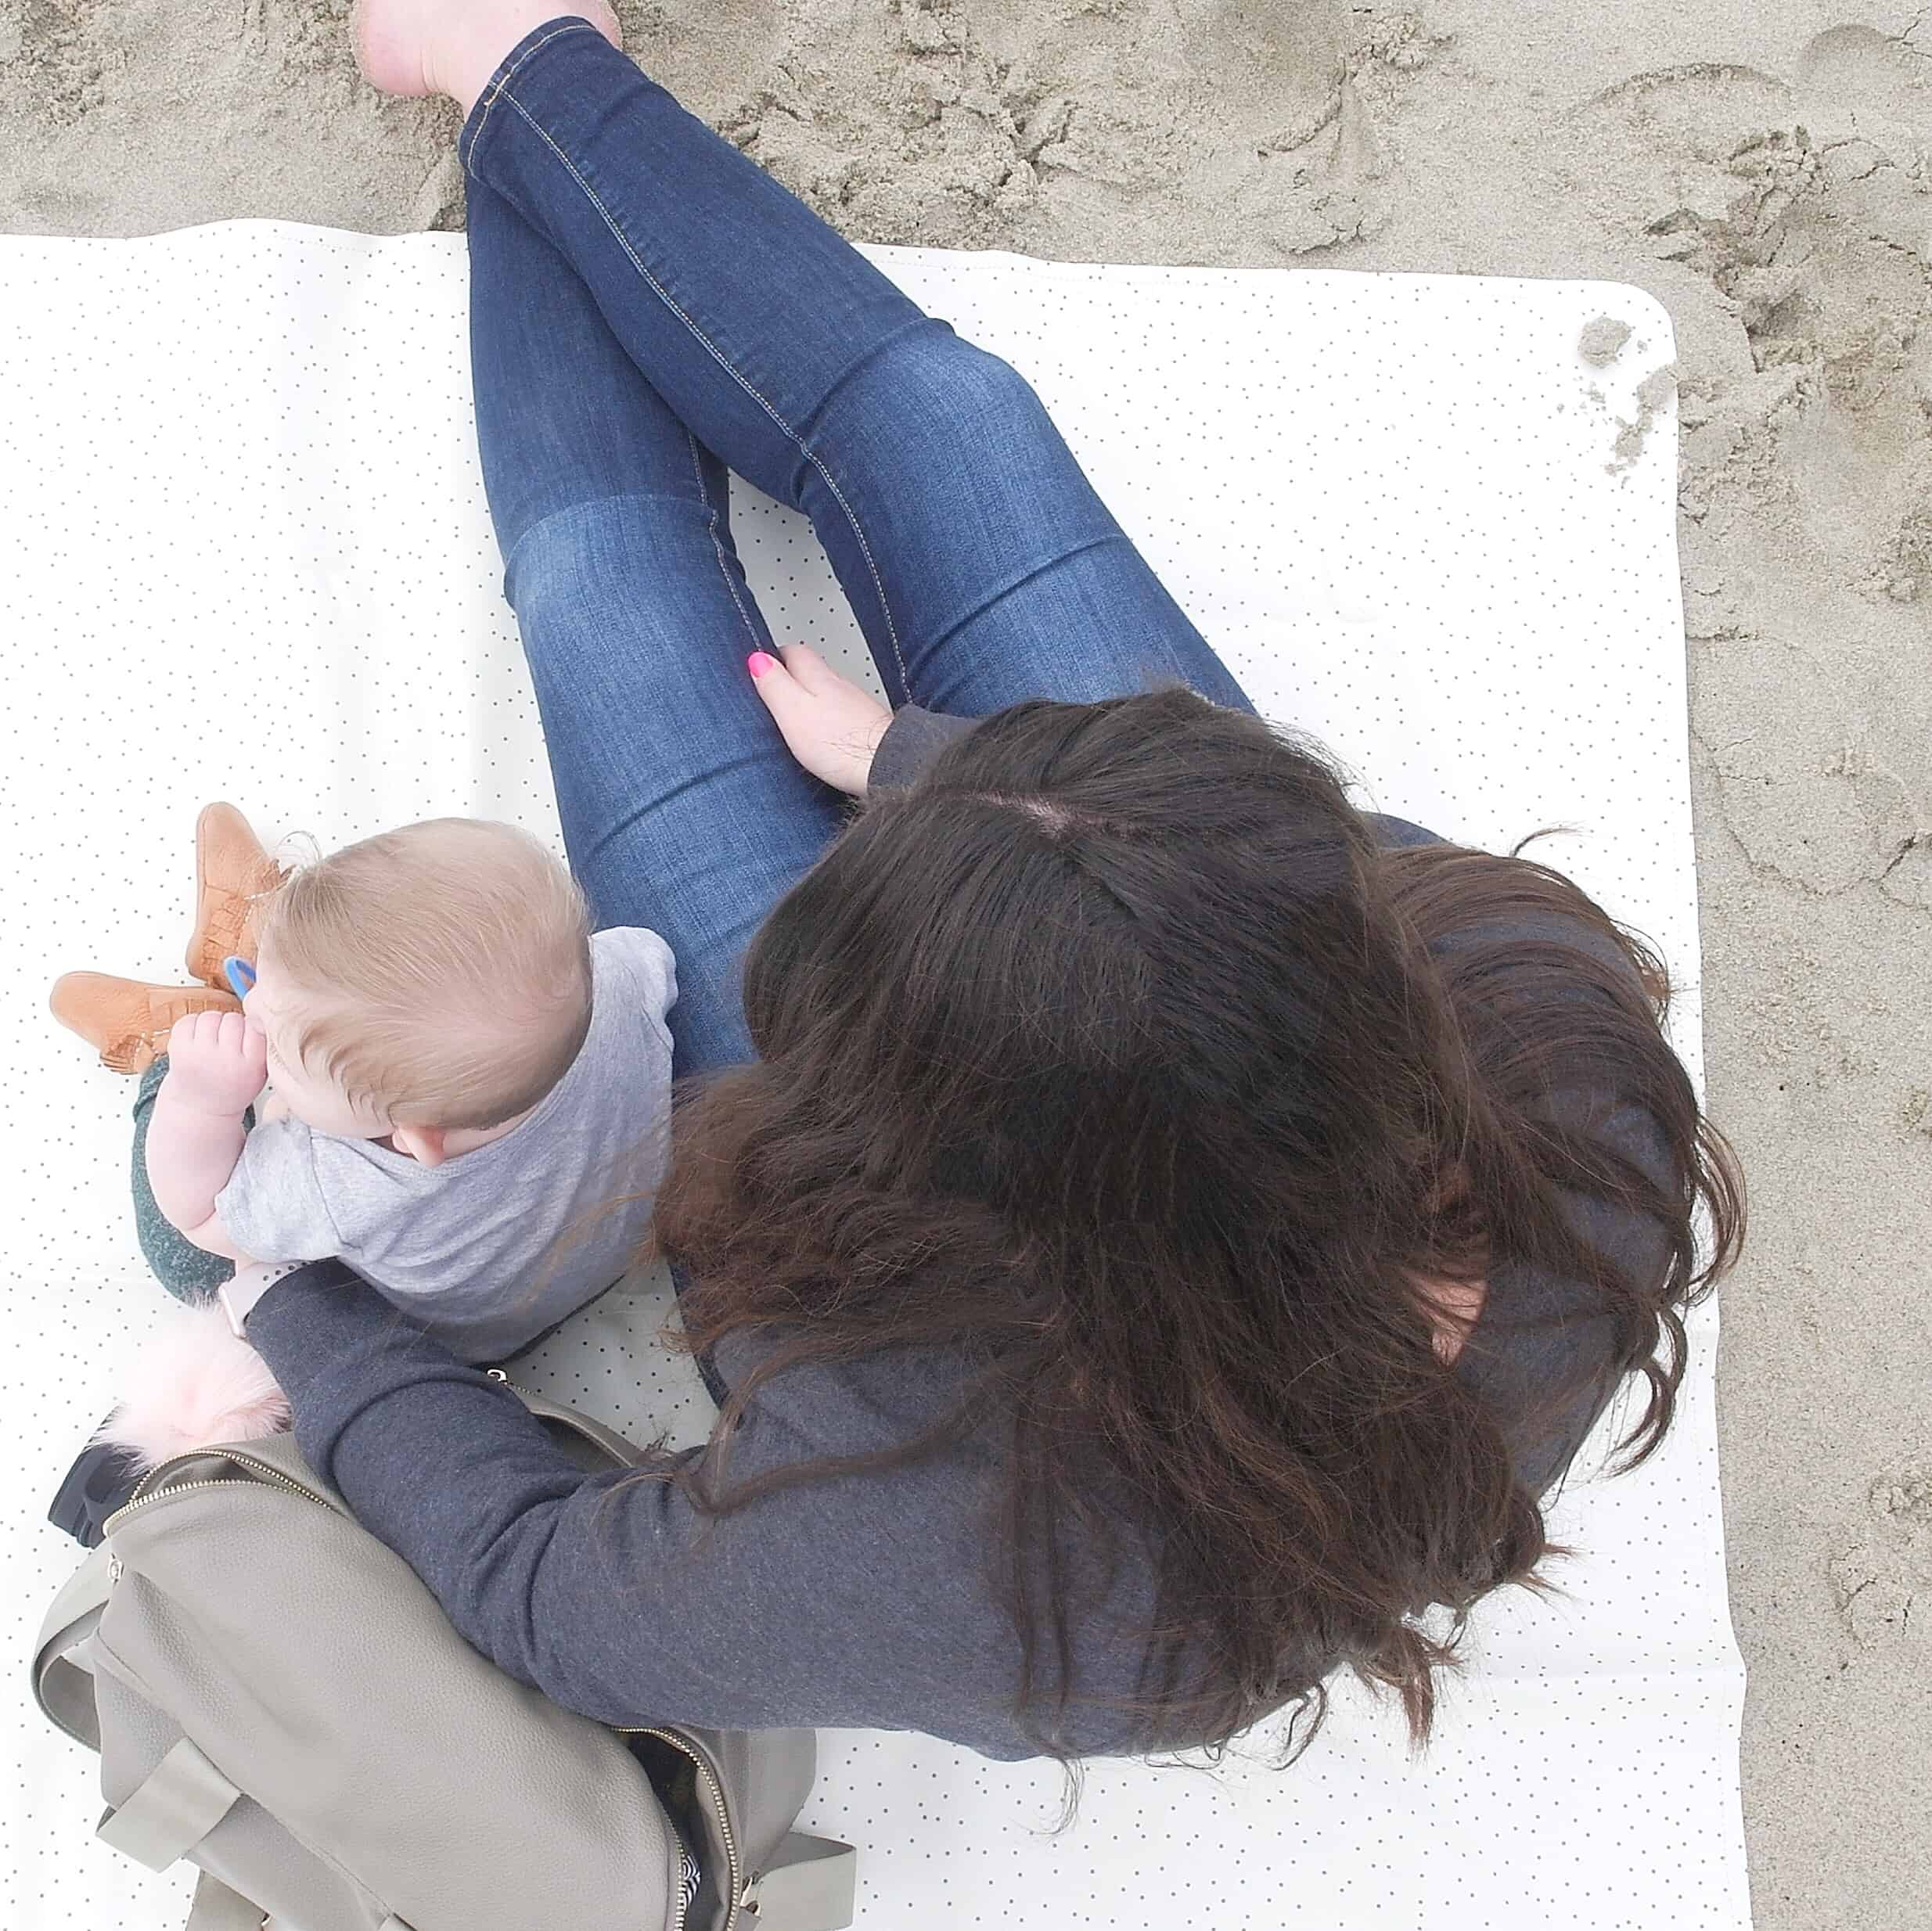 baby and mom on gathre mat at beach | Baby and Toddler Beach Must Haves